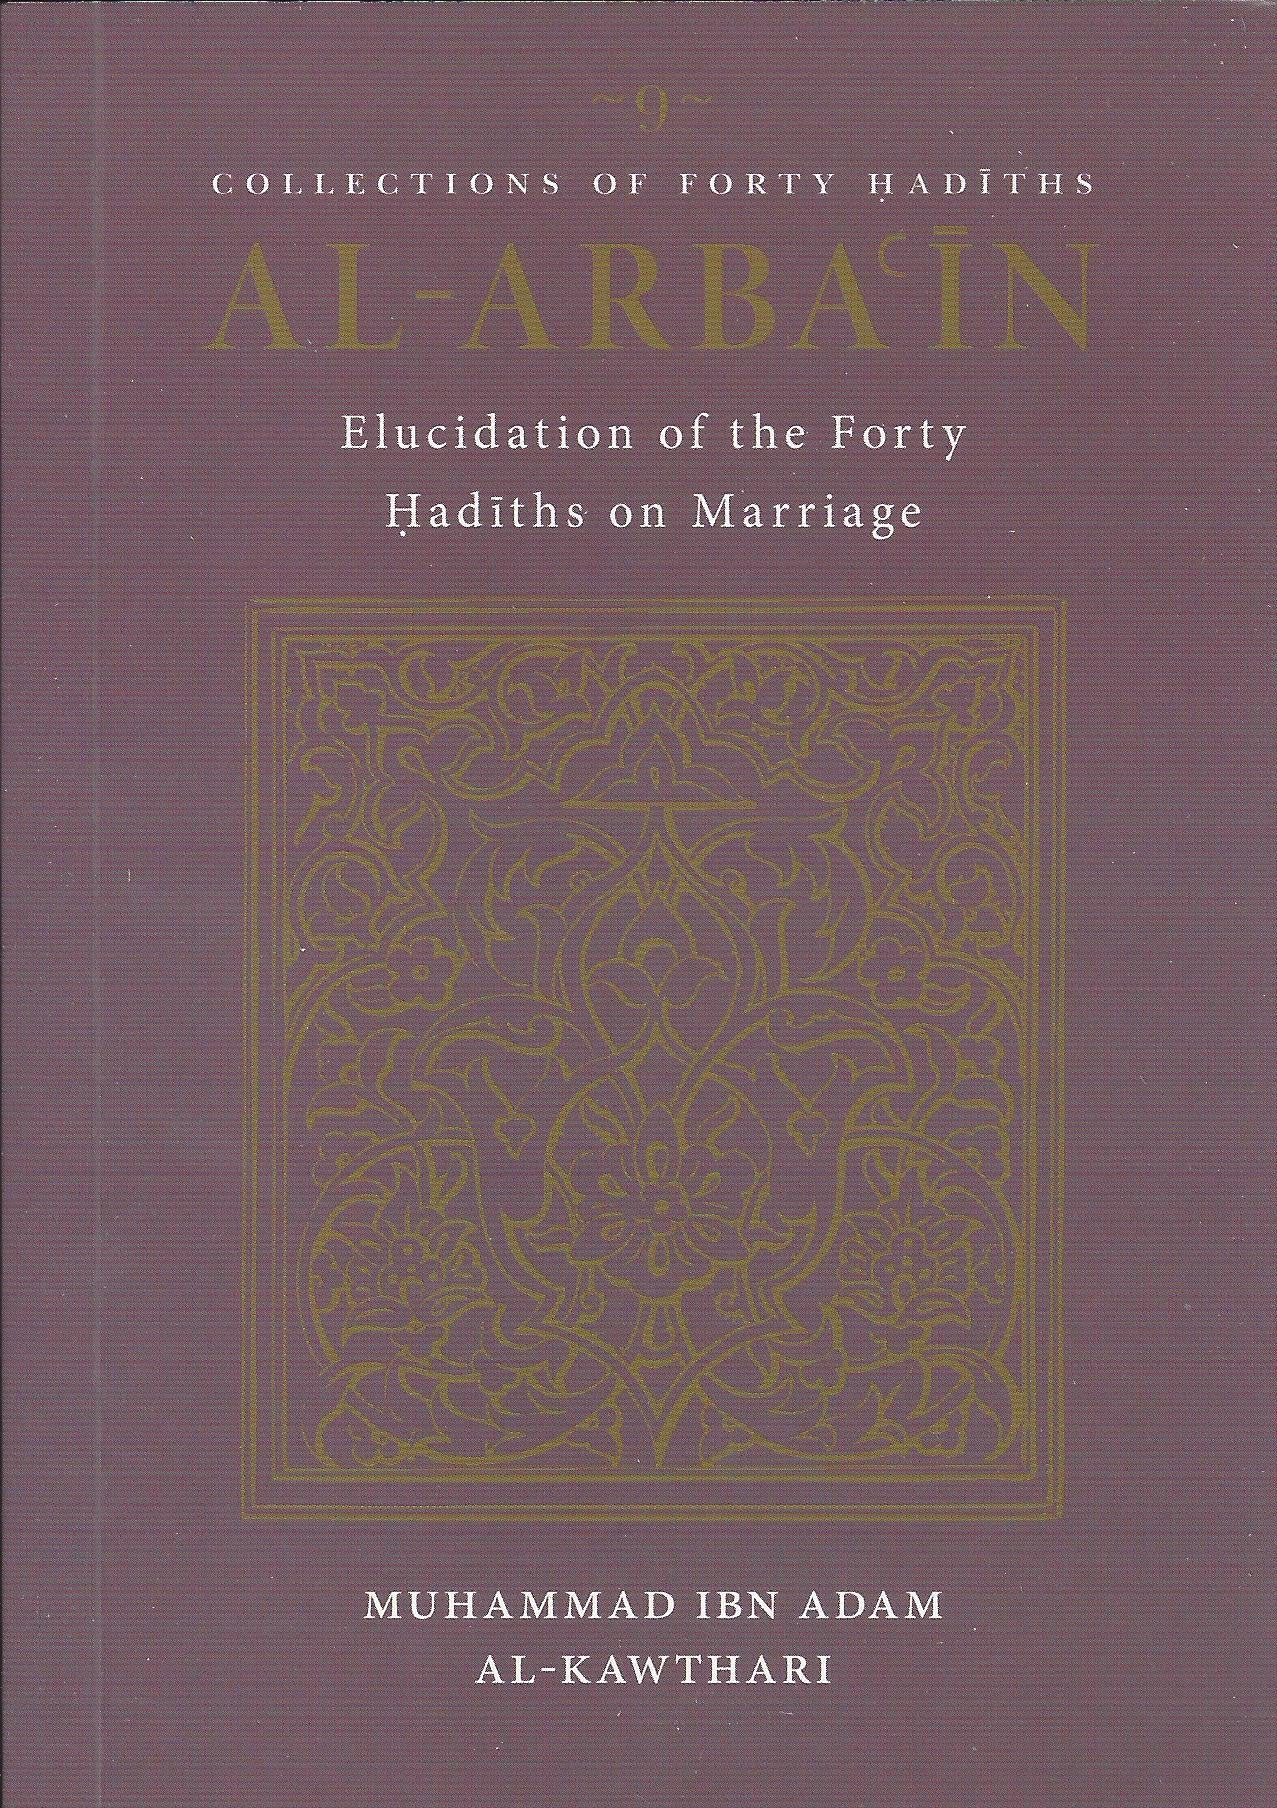 Al-Arbain: Elucidation Of Forty Hadiths On Marriage , Book - Daybreak International Bookstore, Daybreak Press Global Bookshop